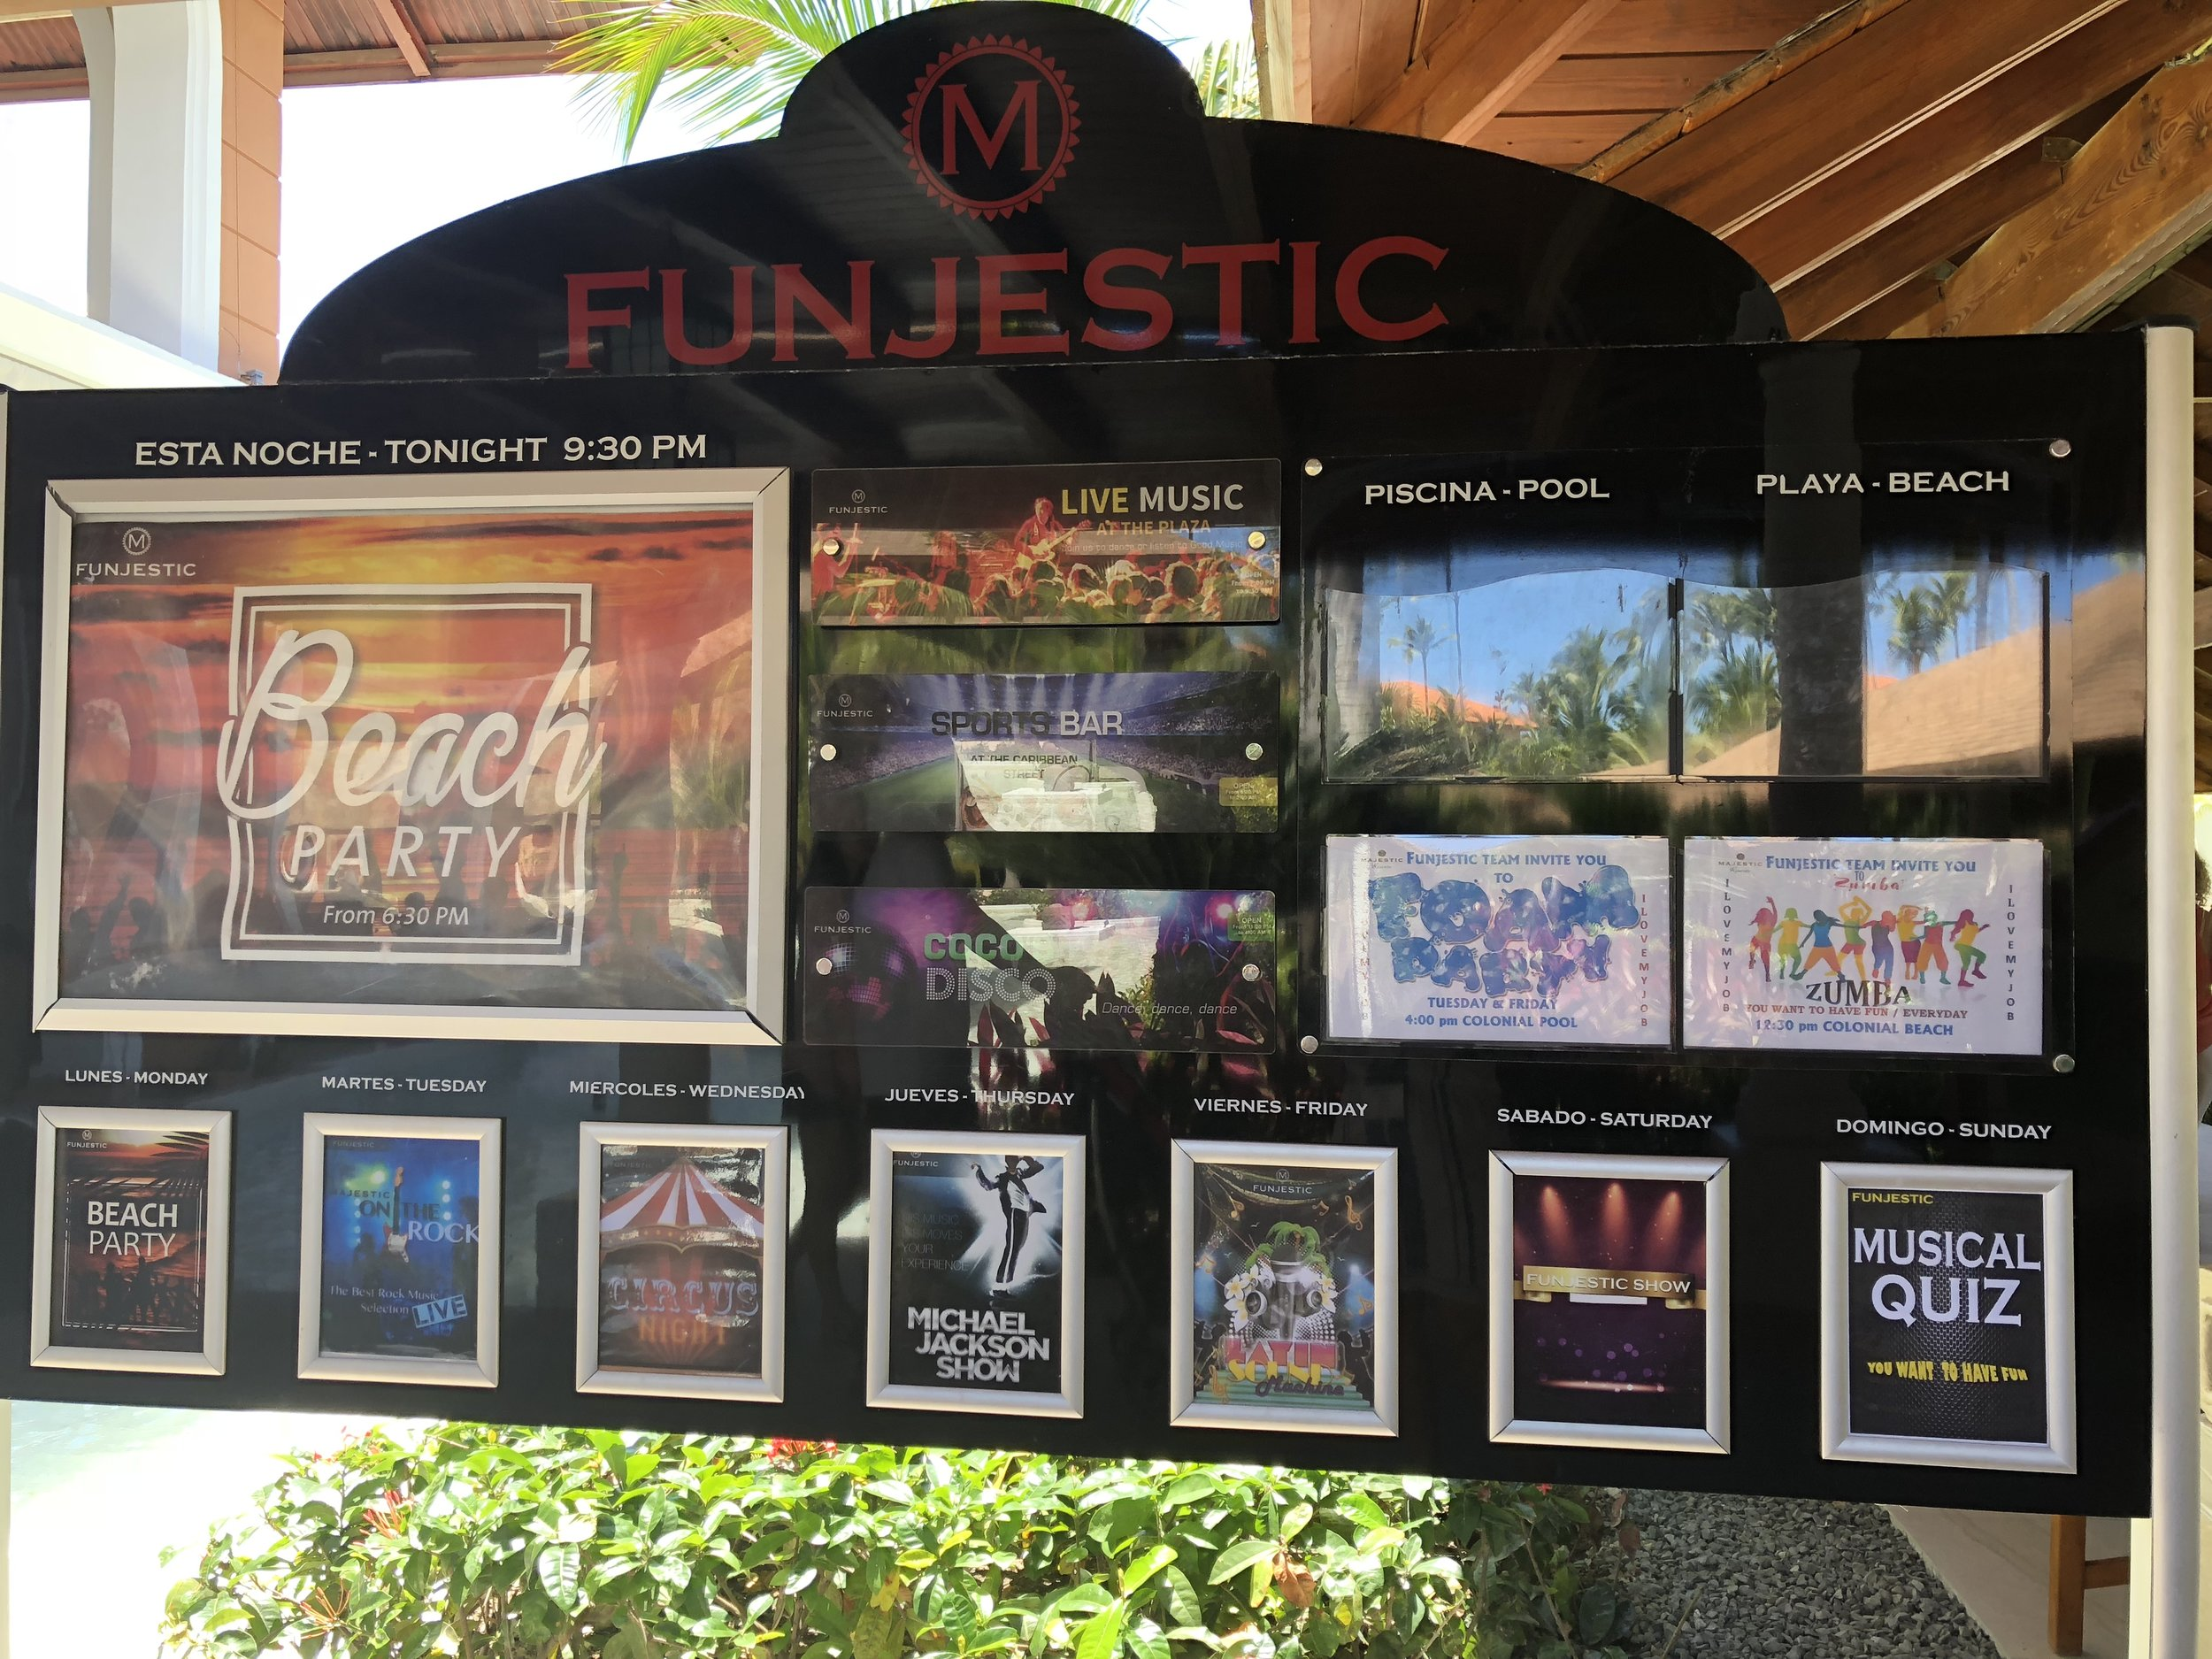 The Funjestic board is located throughout the resort and let you know about the activities and shows.